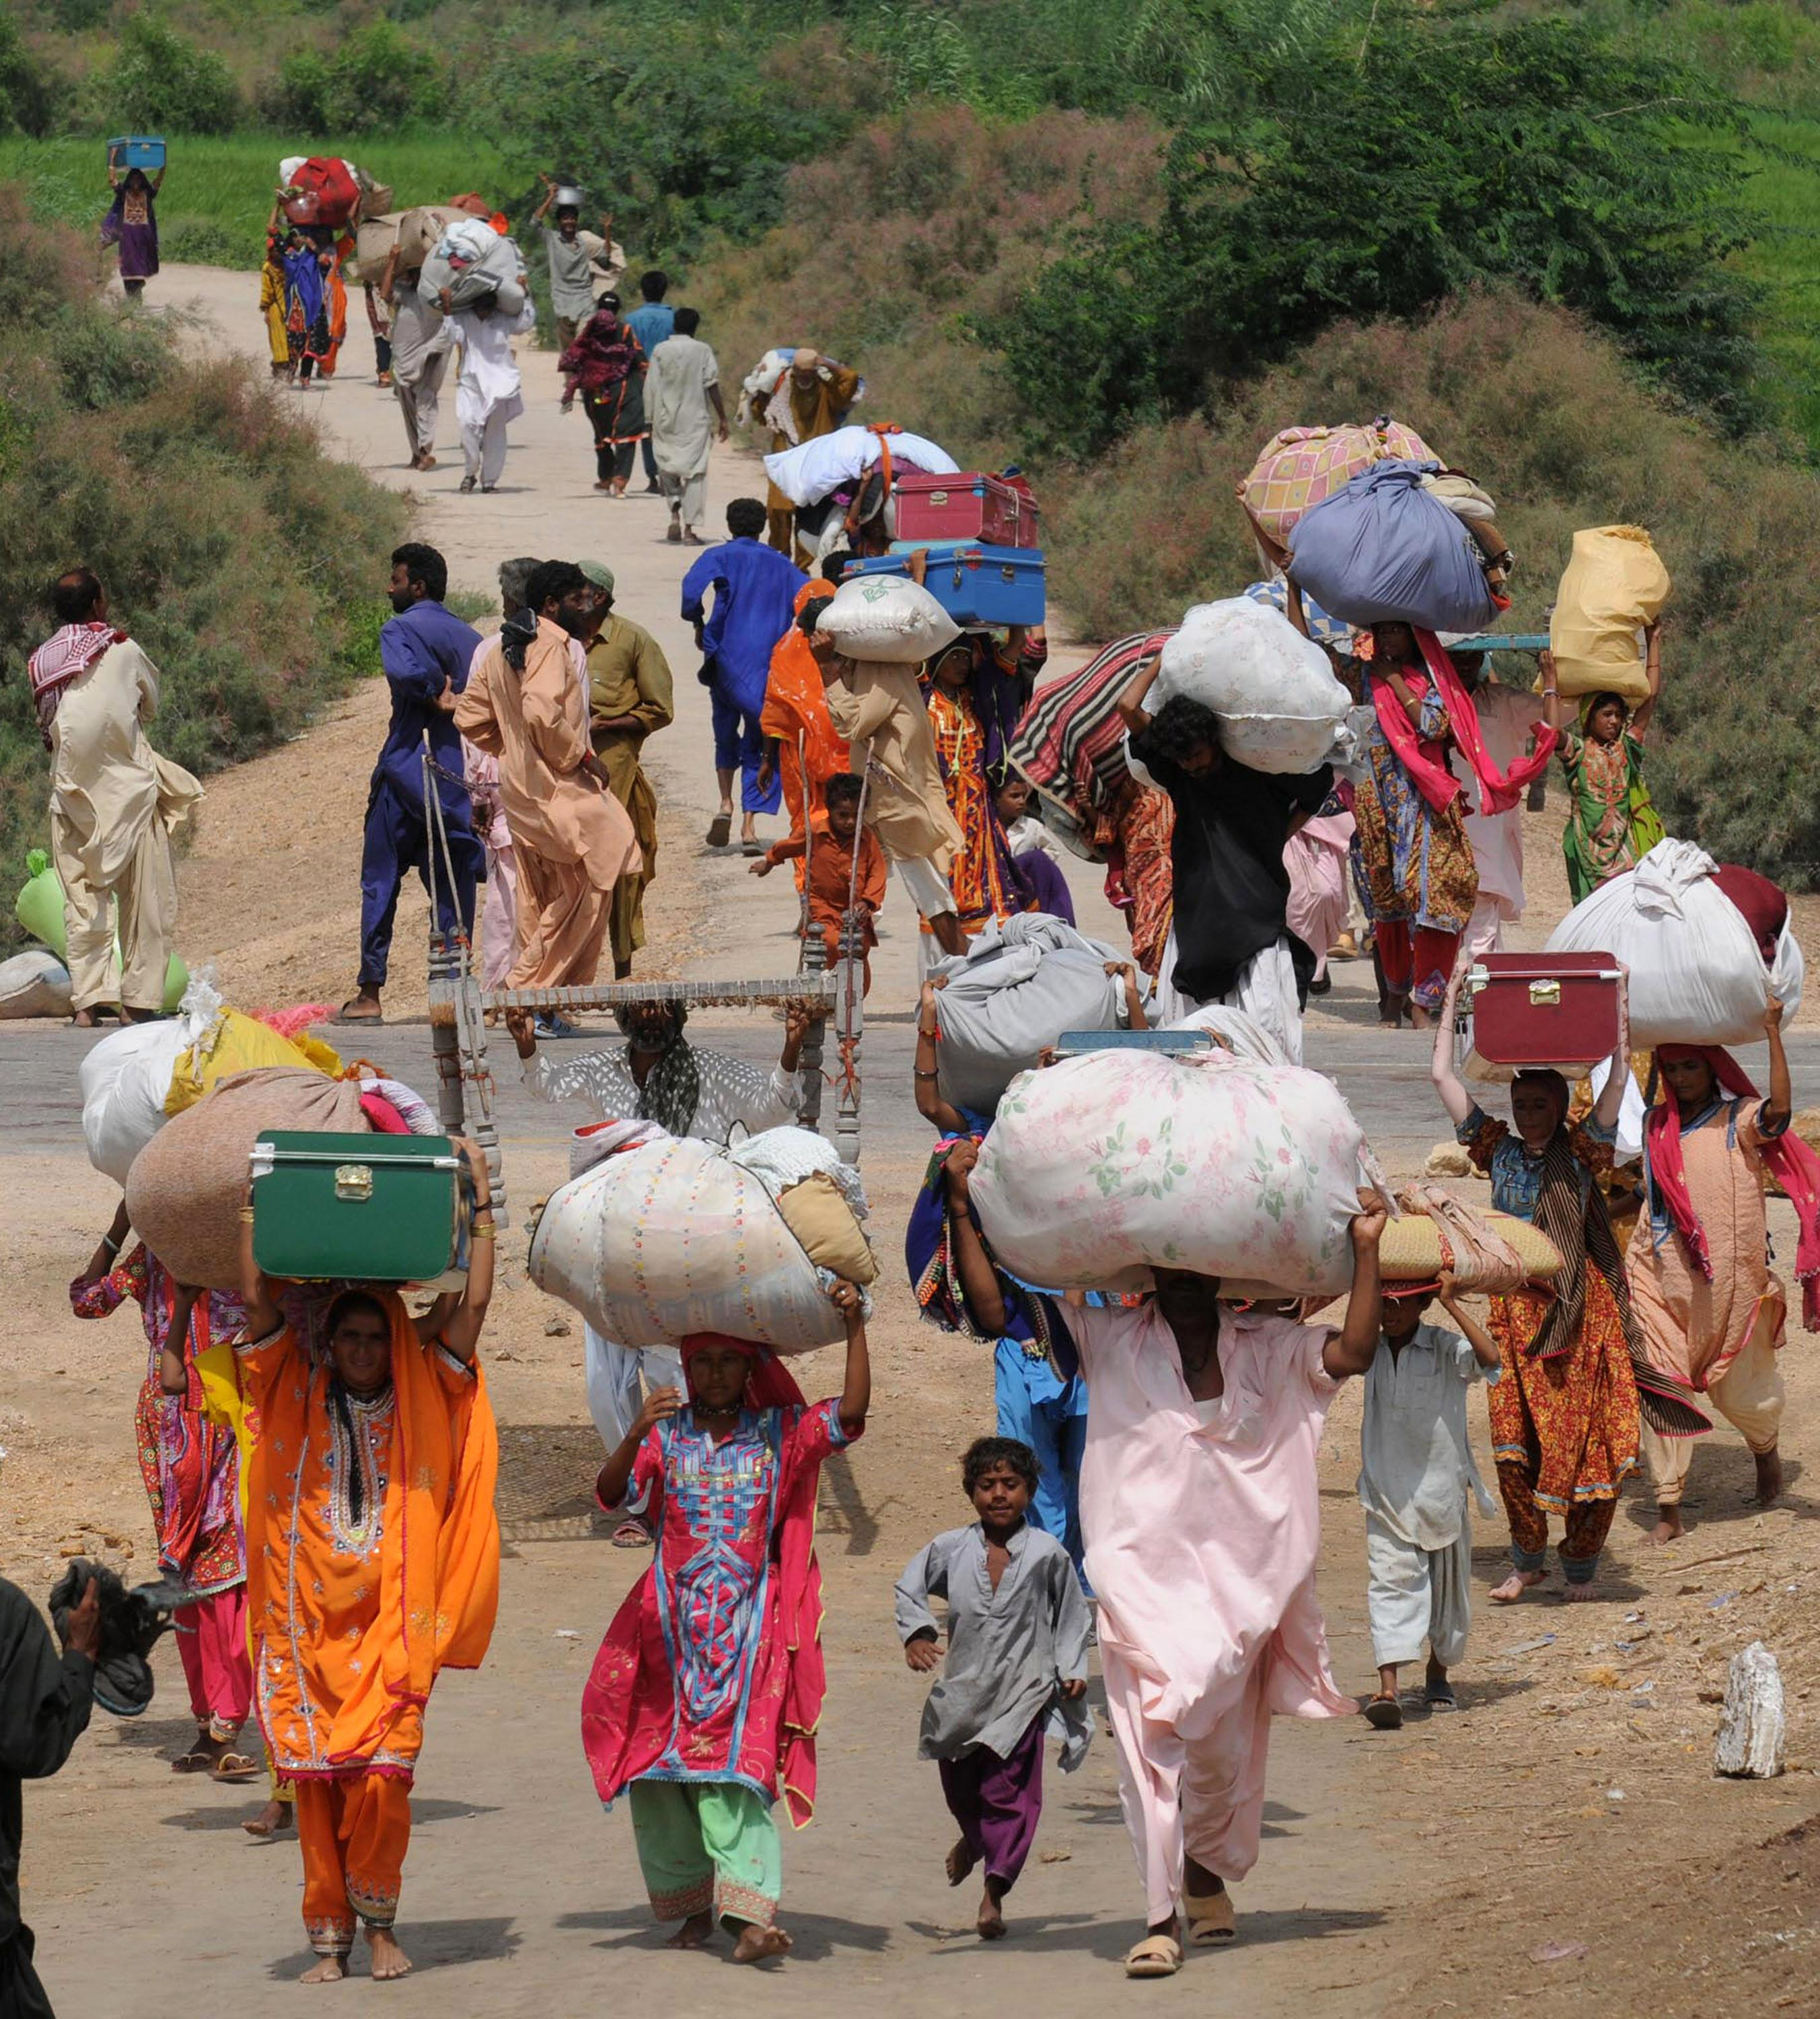 Women carrying parcels on their heads.